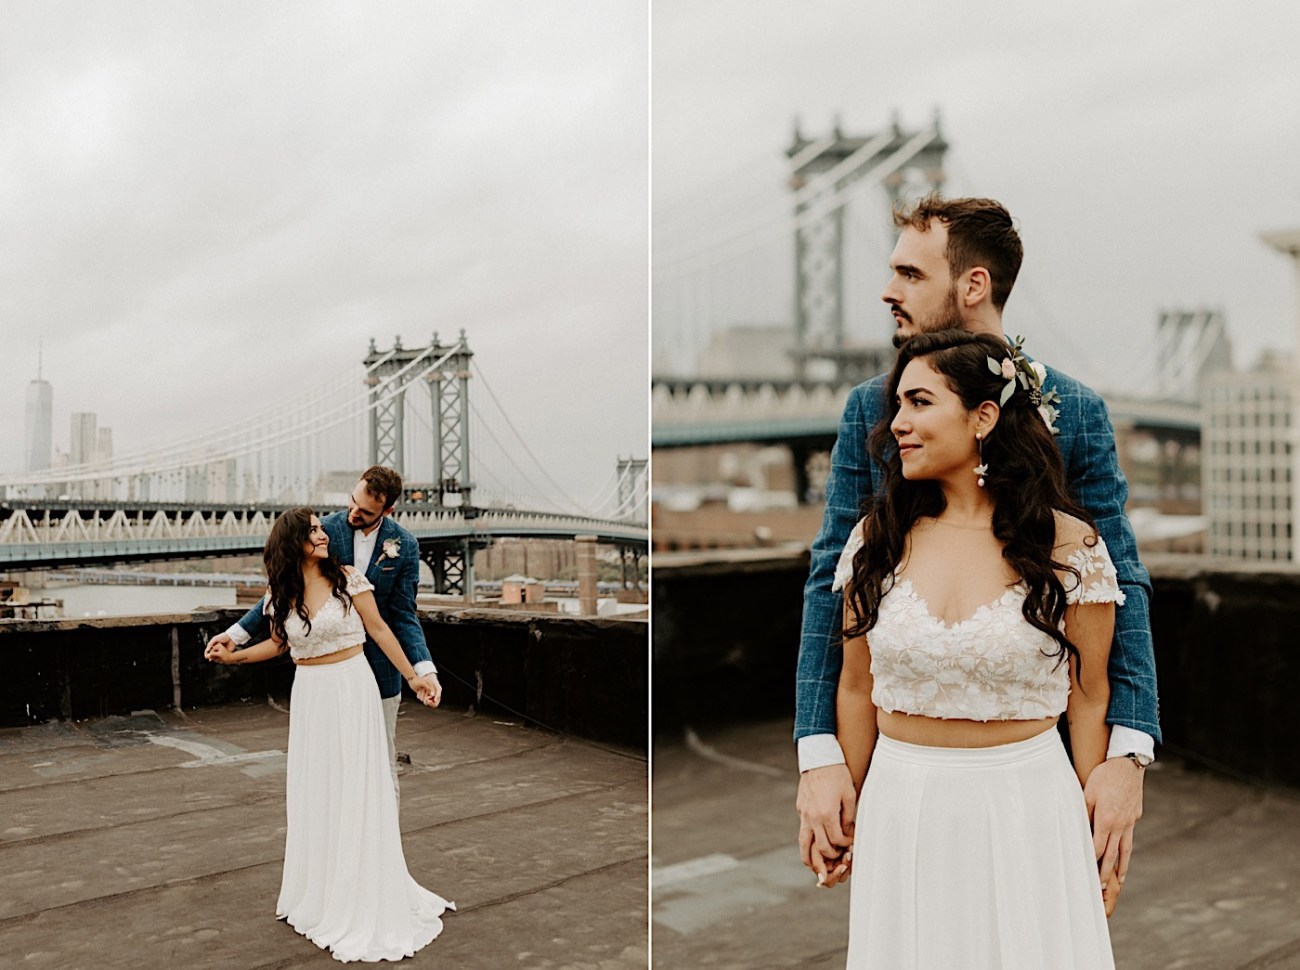 LIC Wedding Greenpoint Wedding LIC Elopement New York Wedding Photographer 089